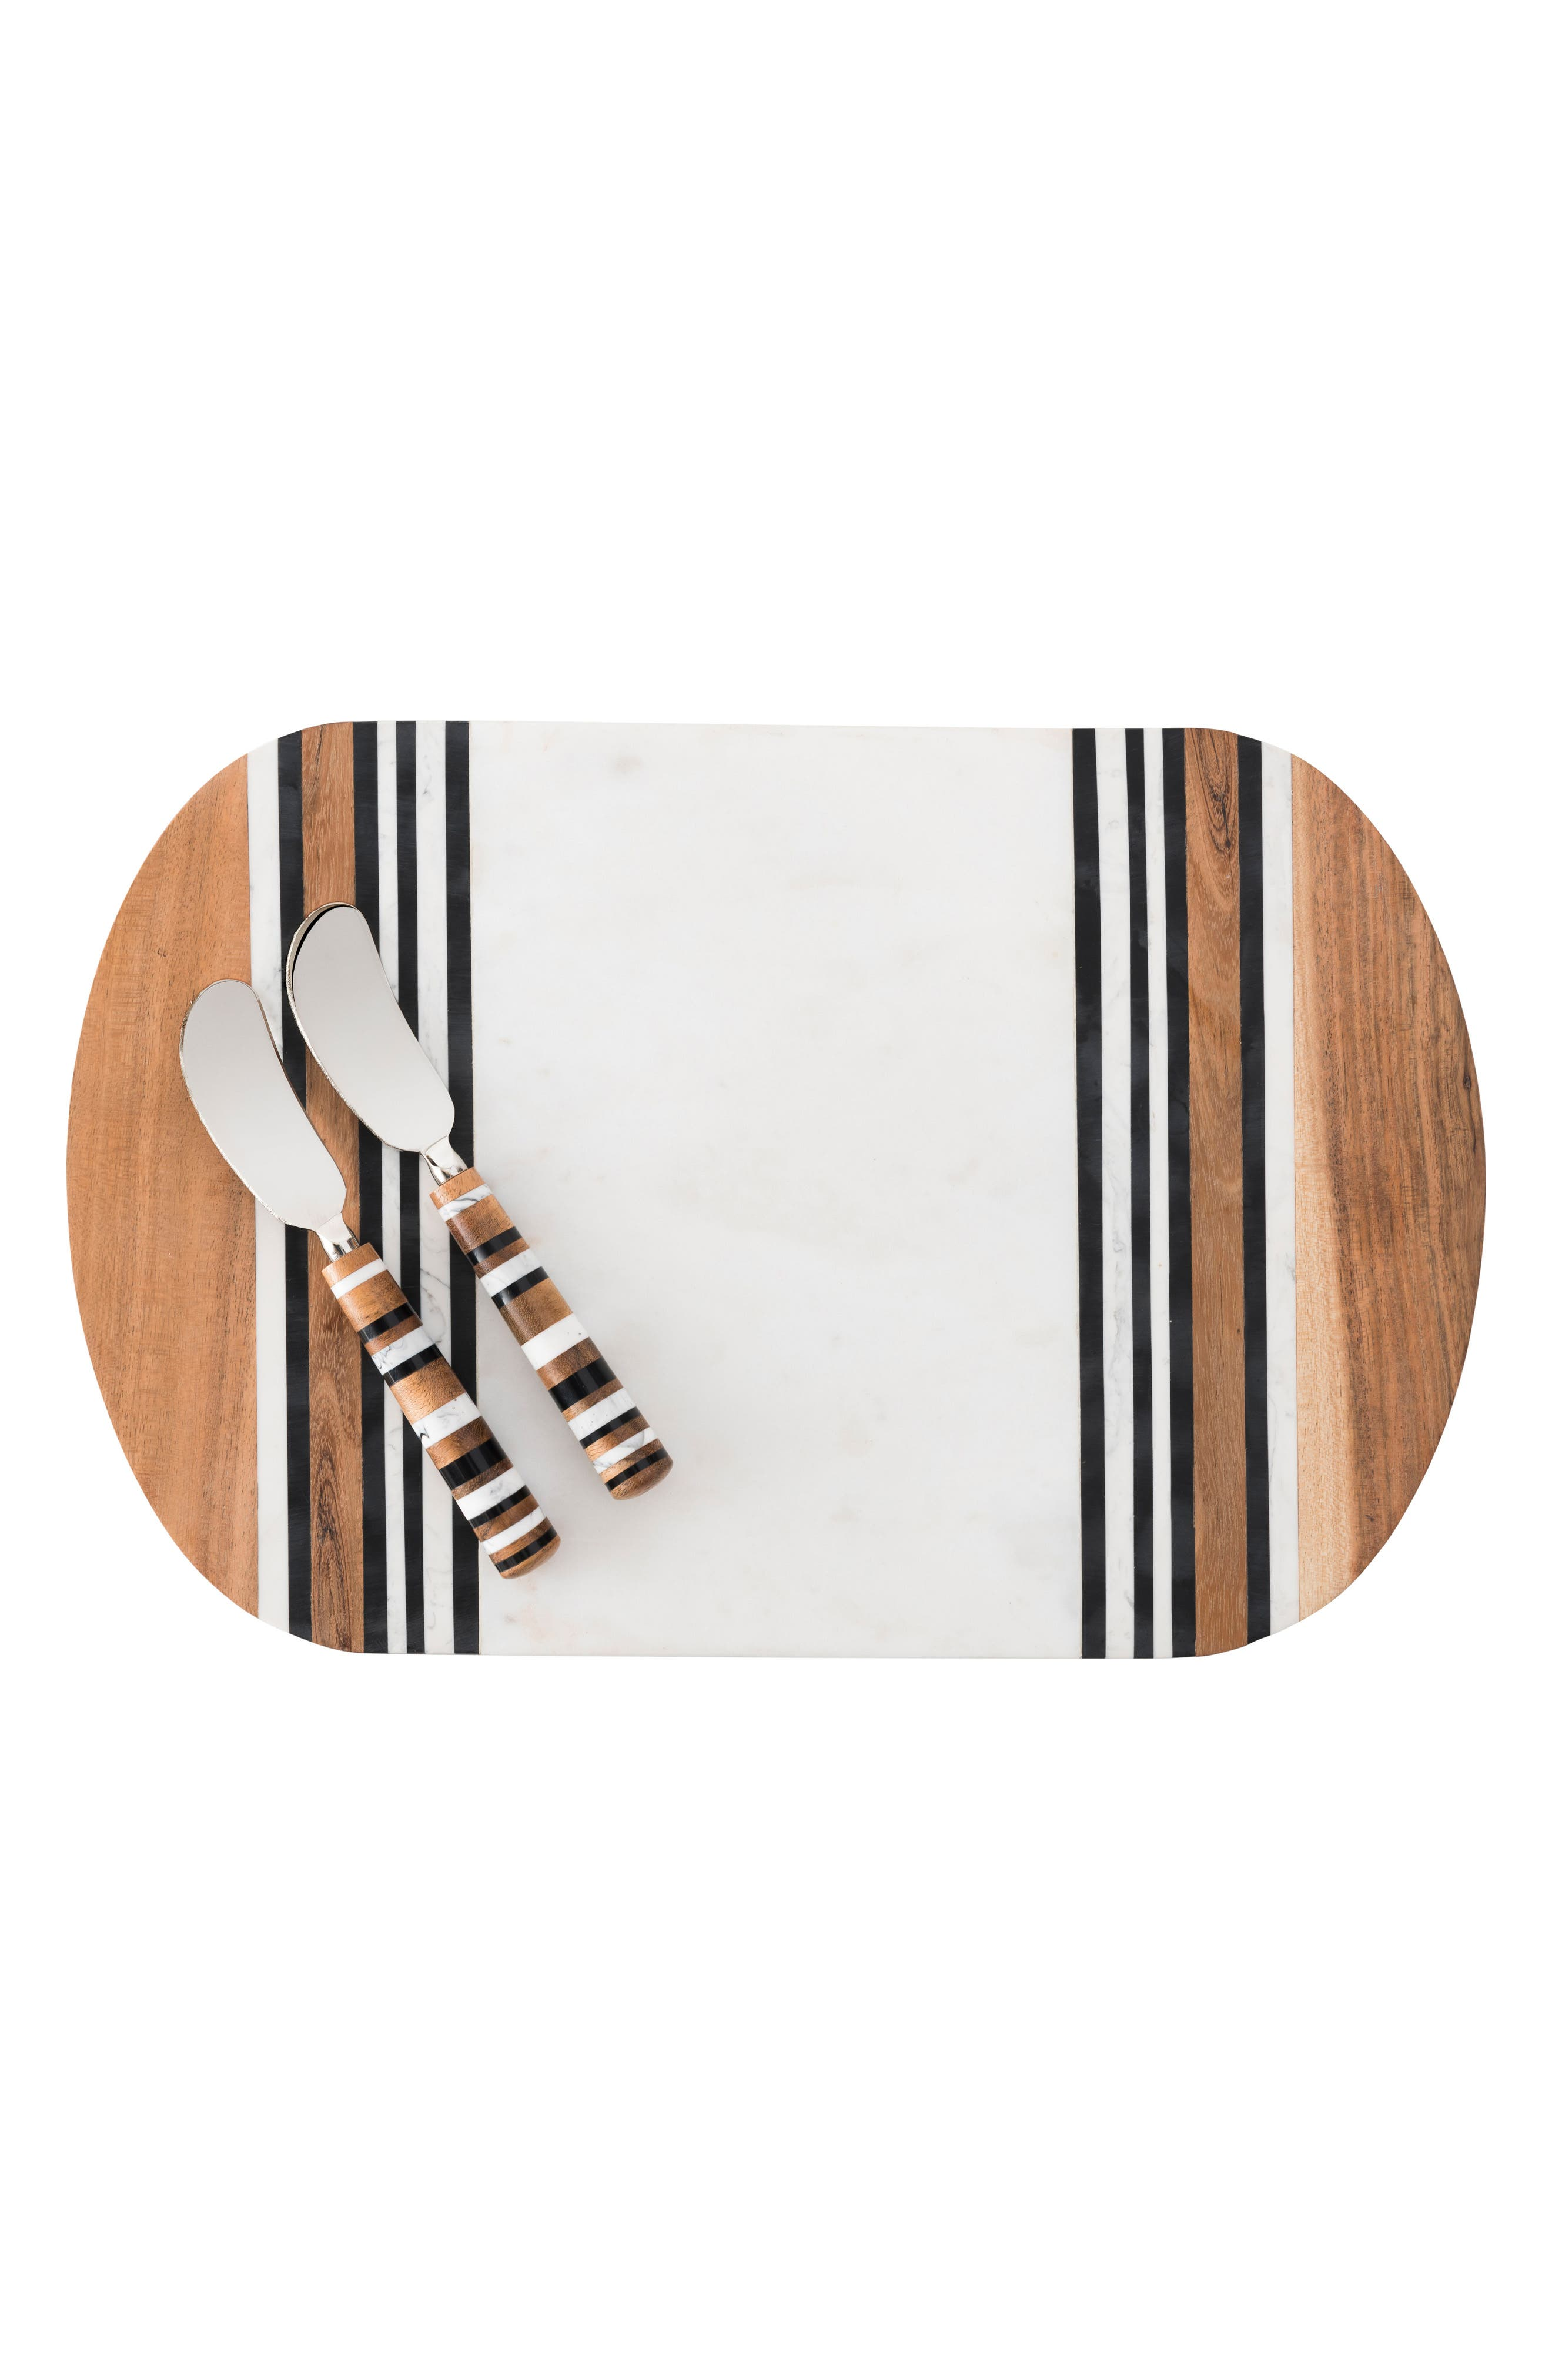 Juliska Stonewood Stripe Serving Board & Spreaders